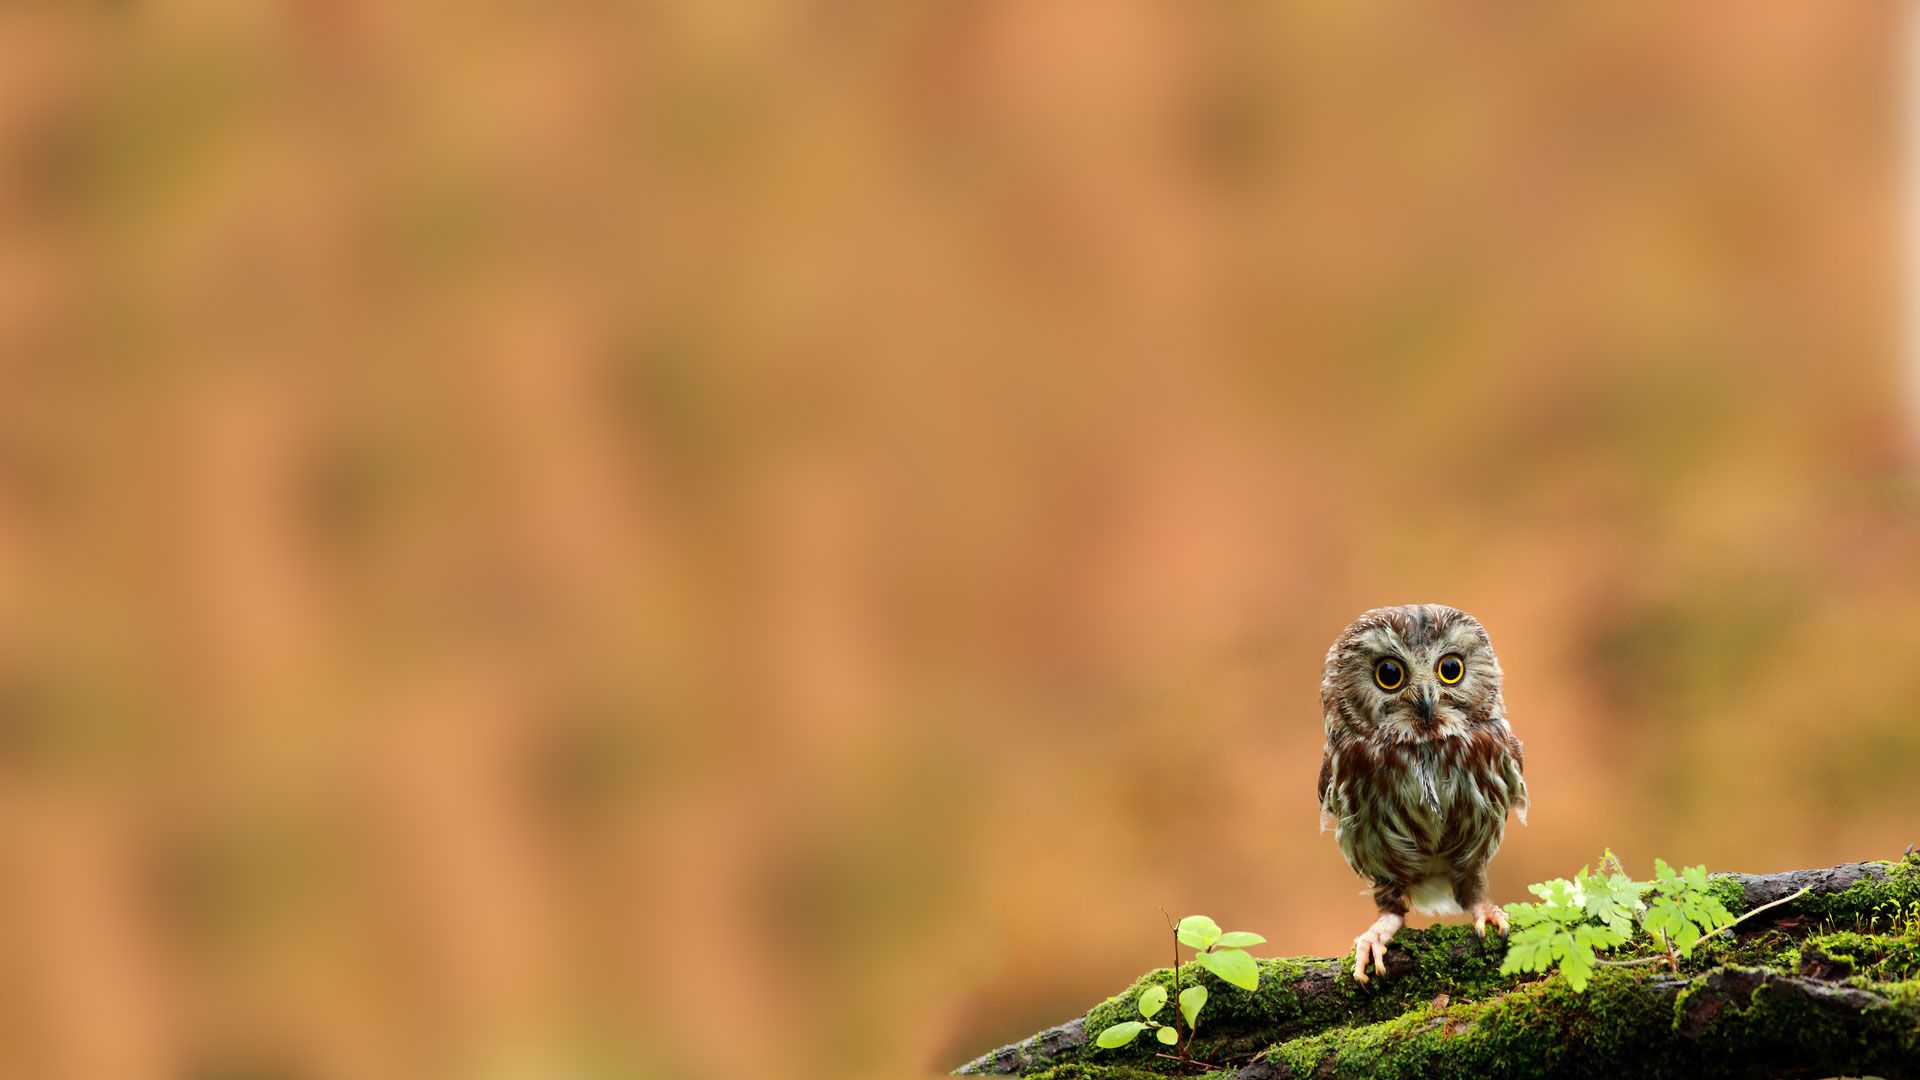 owl wallpaper hd